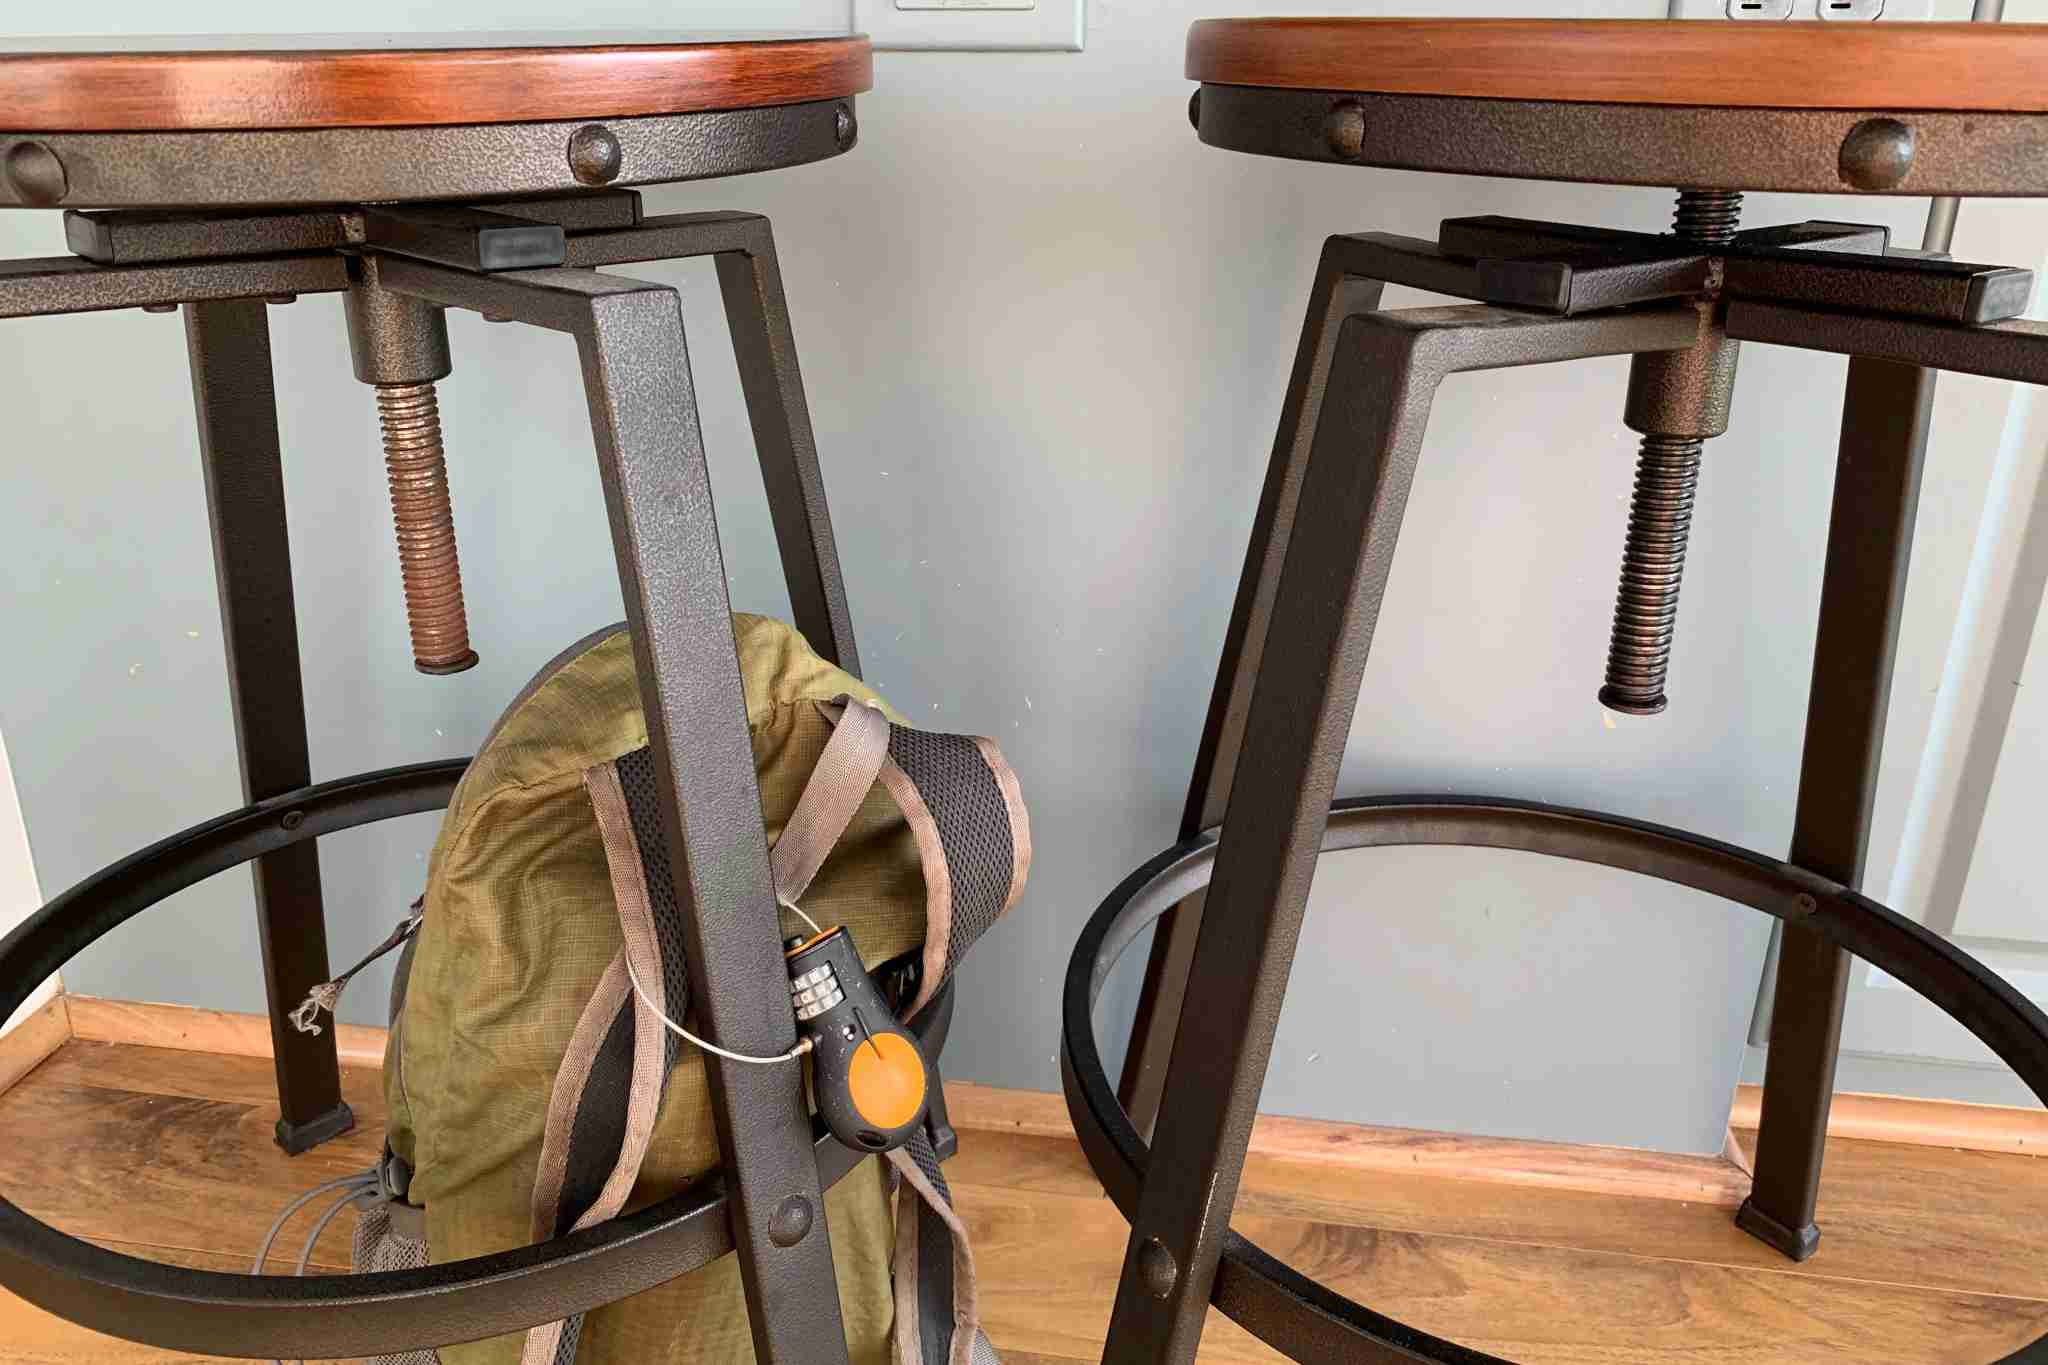 Attaching your bag to a bar stool in a cafe, restaurant or bar will keep it safe from bag snatchers.